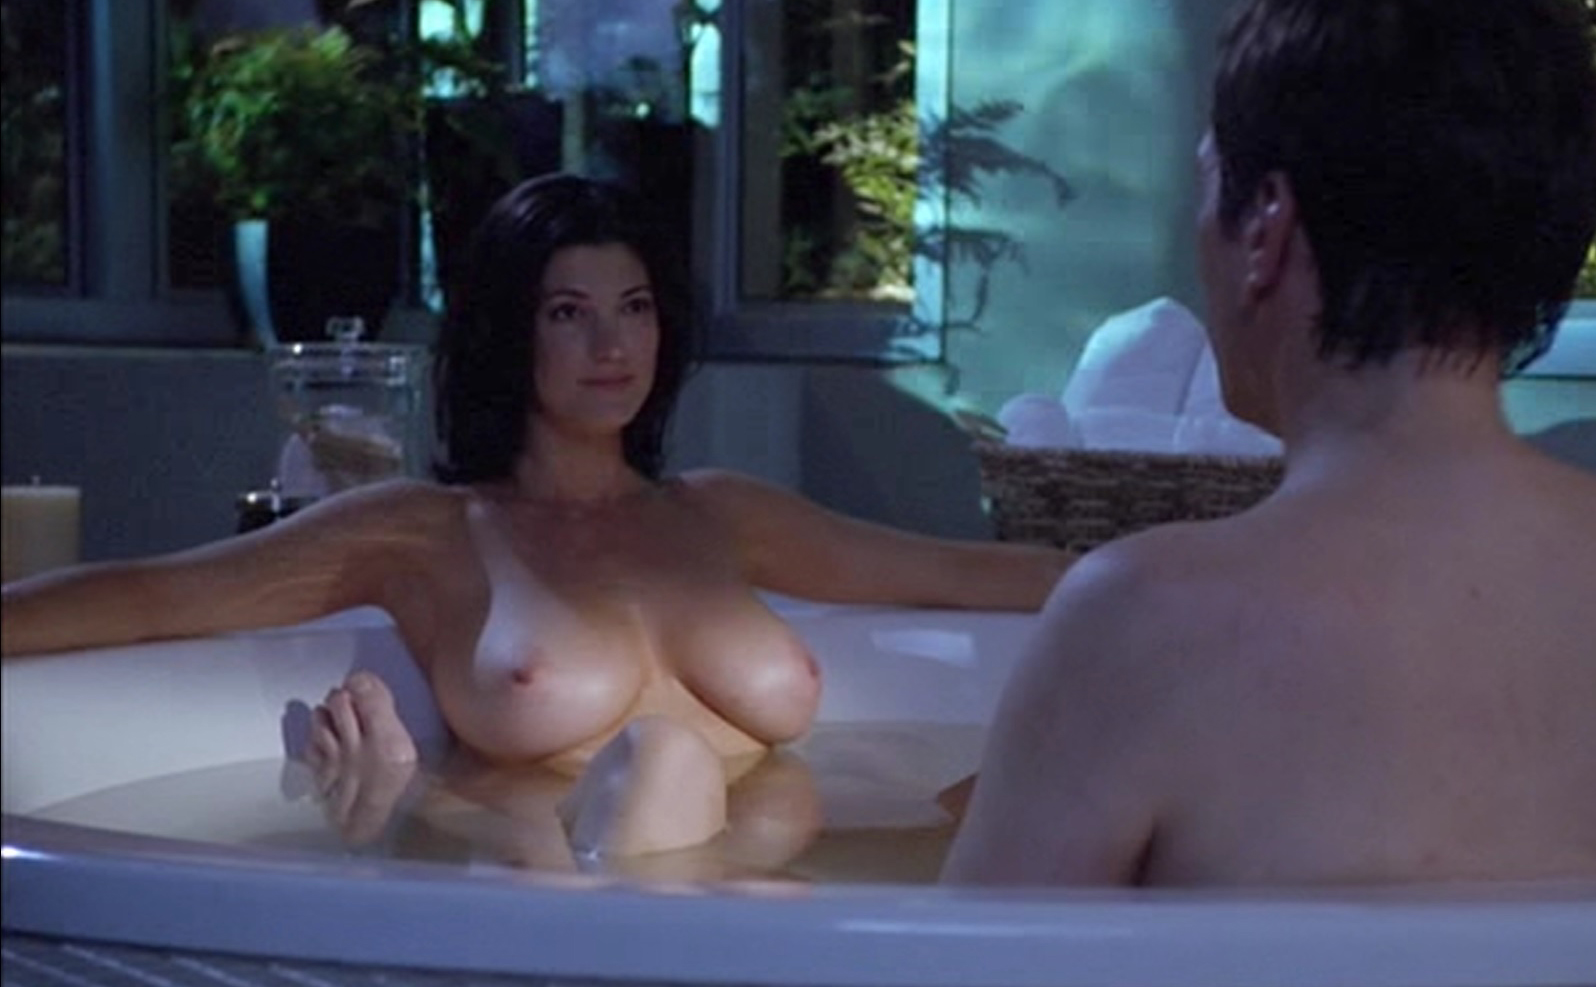 sexy nudes from movie scenes